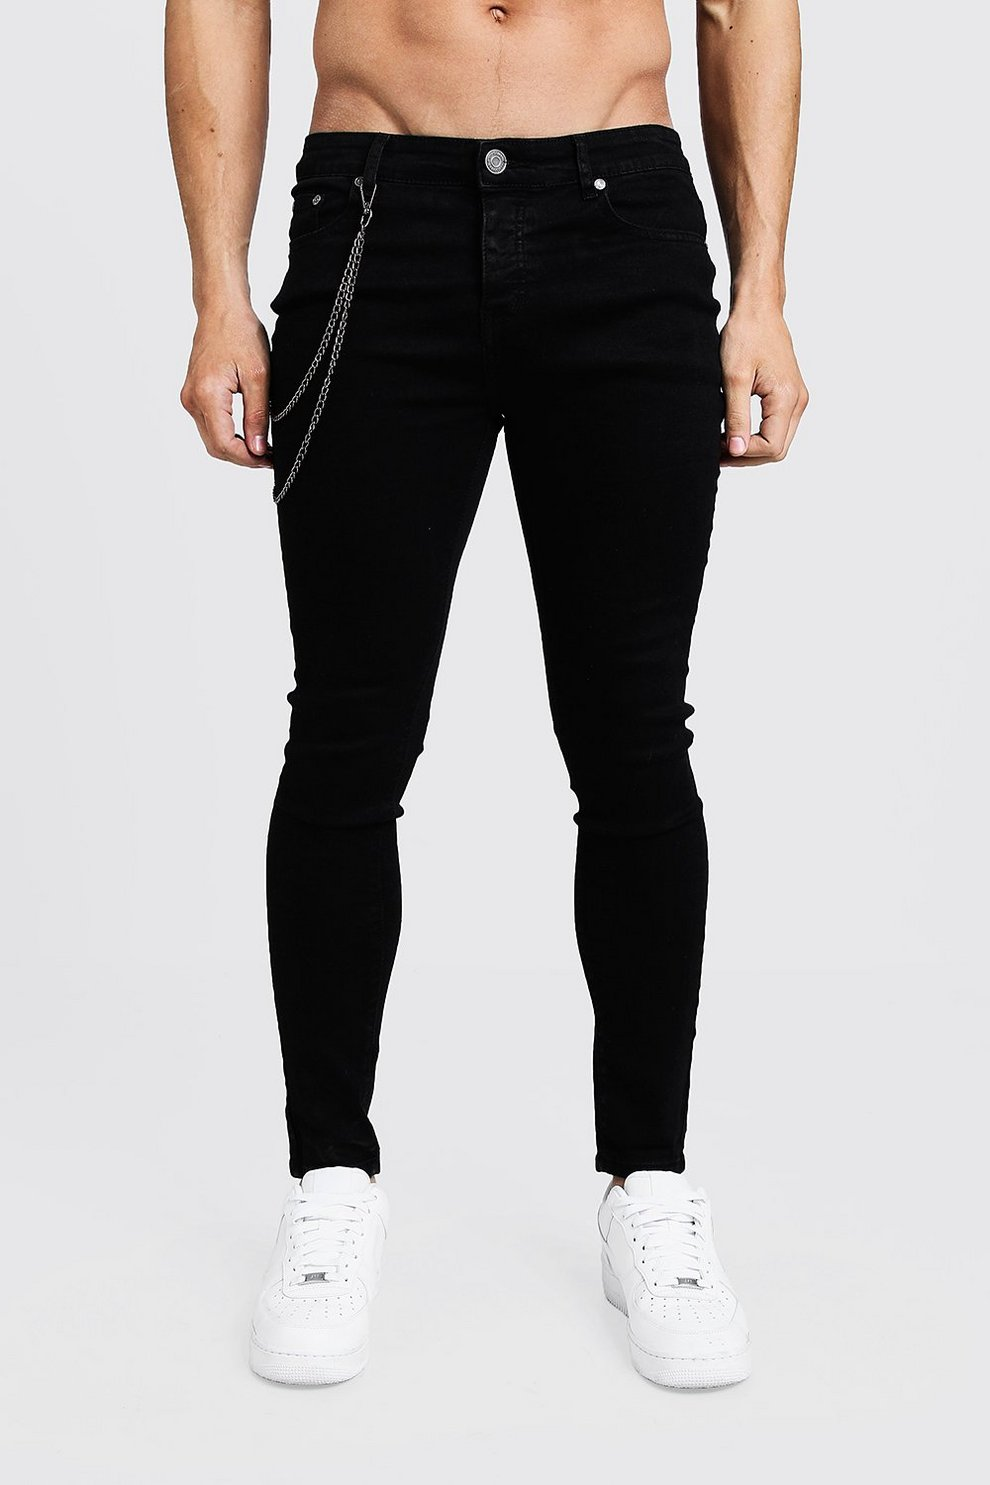 edfd70cba9 Spray On Skinny Jeans With Chain Detail